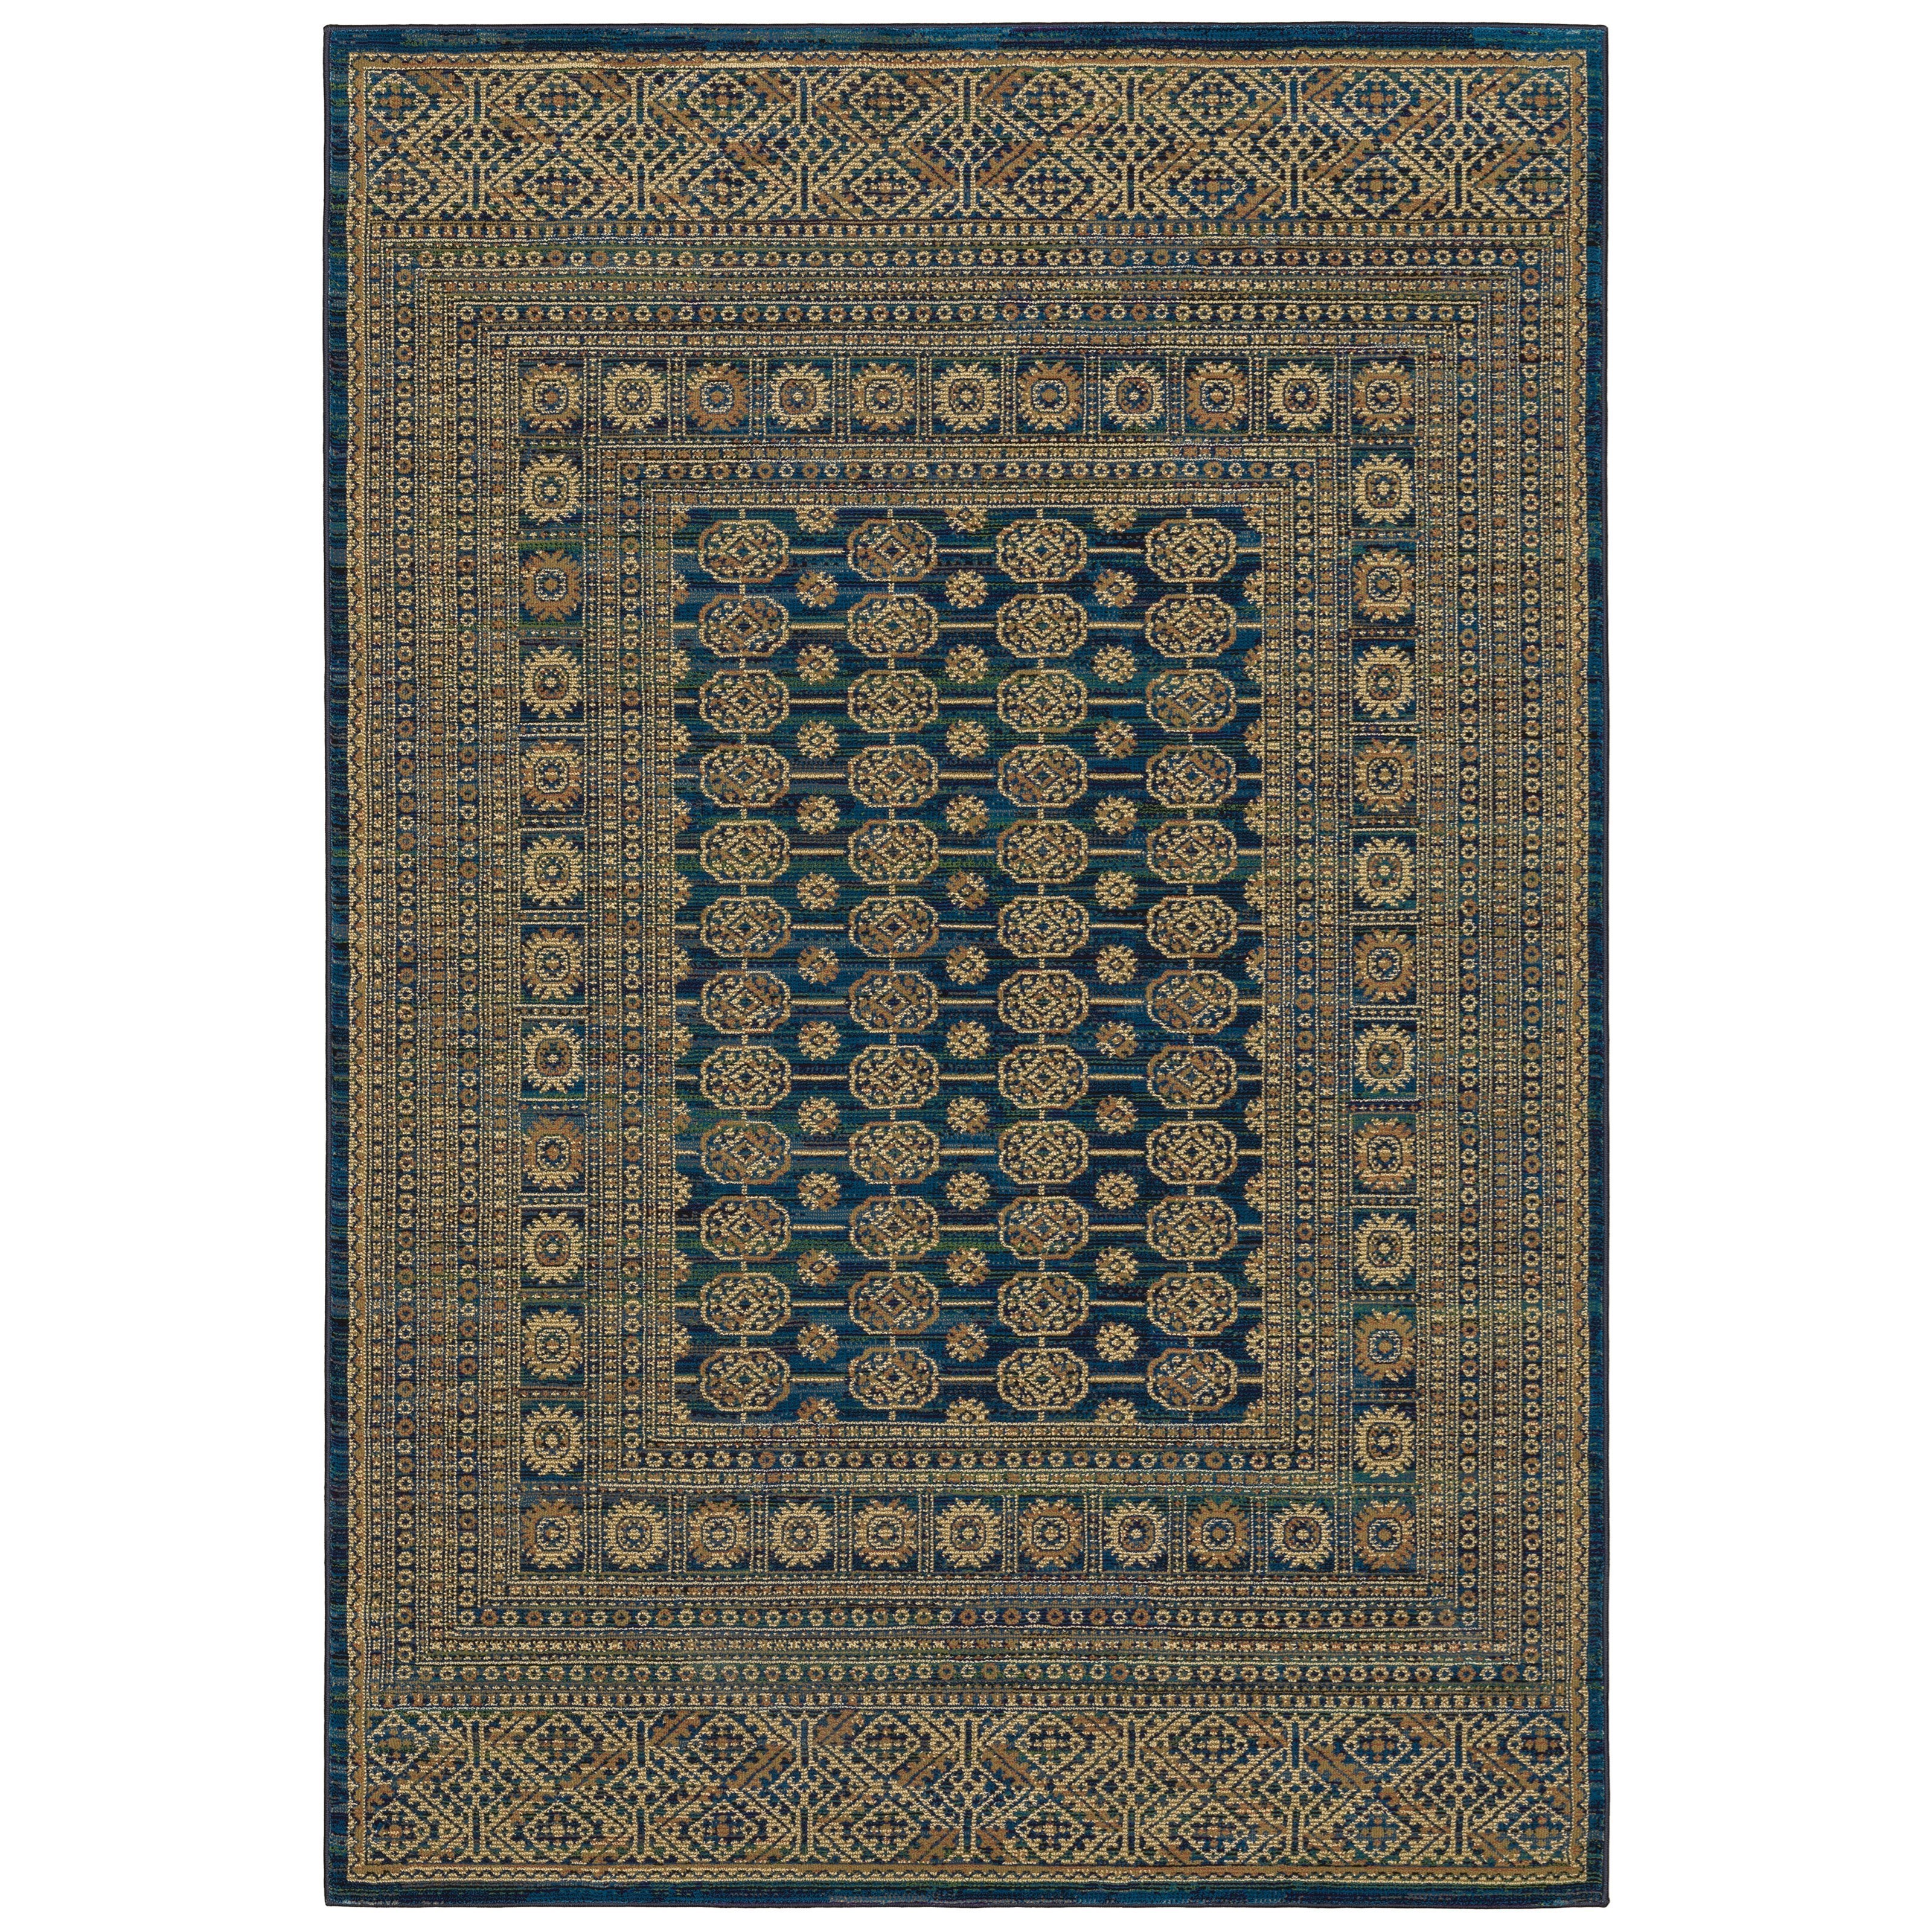 "Ankara 6' 7"" X  9' 6"" Rectangle Rug by Oriental Weavers at Hudson's Furniture"